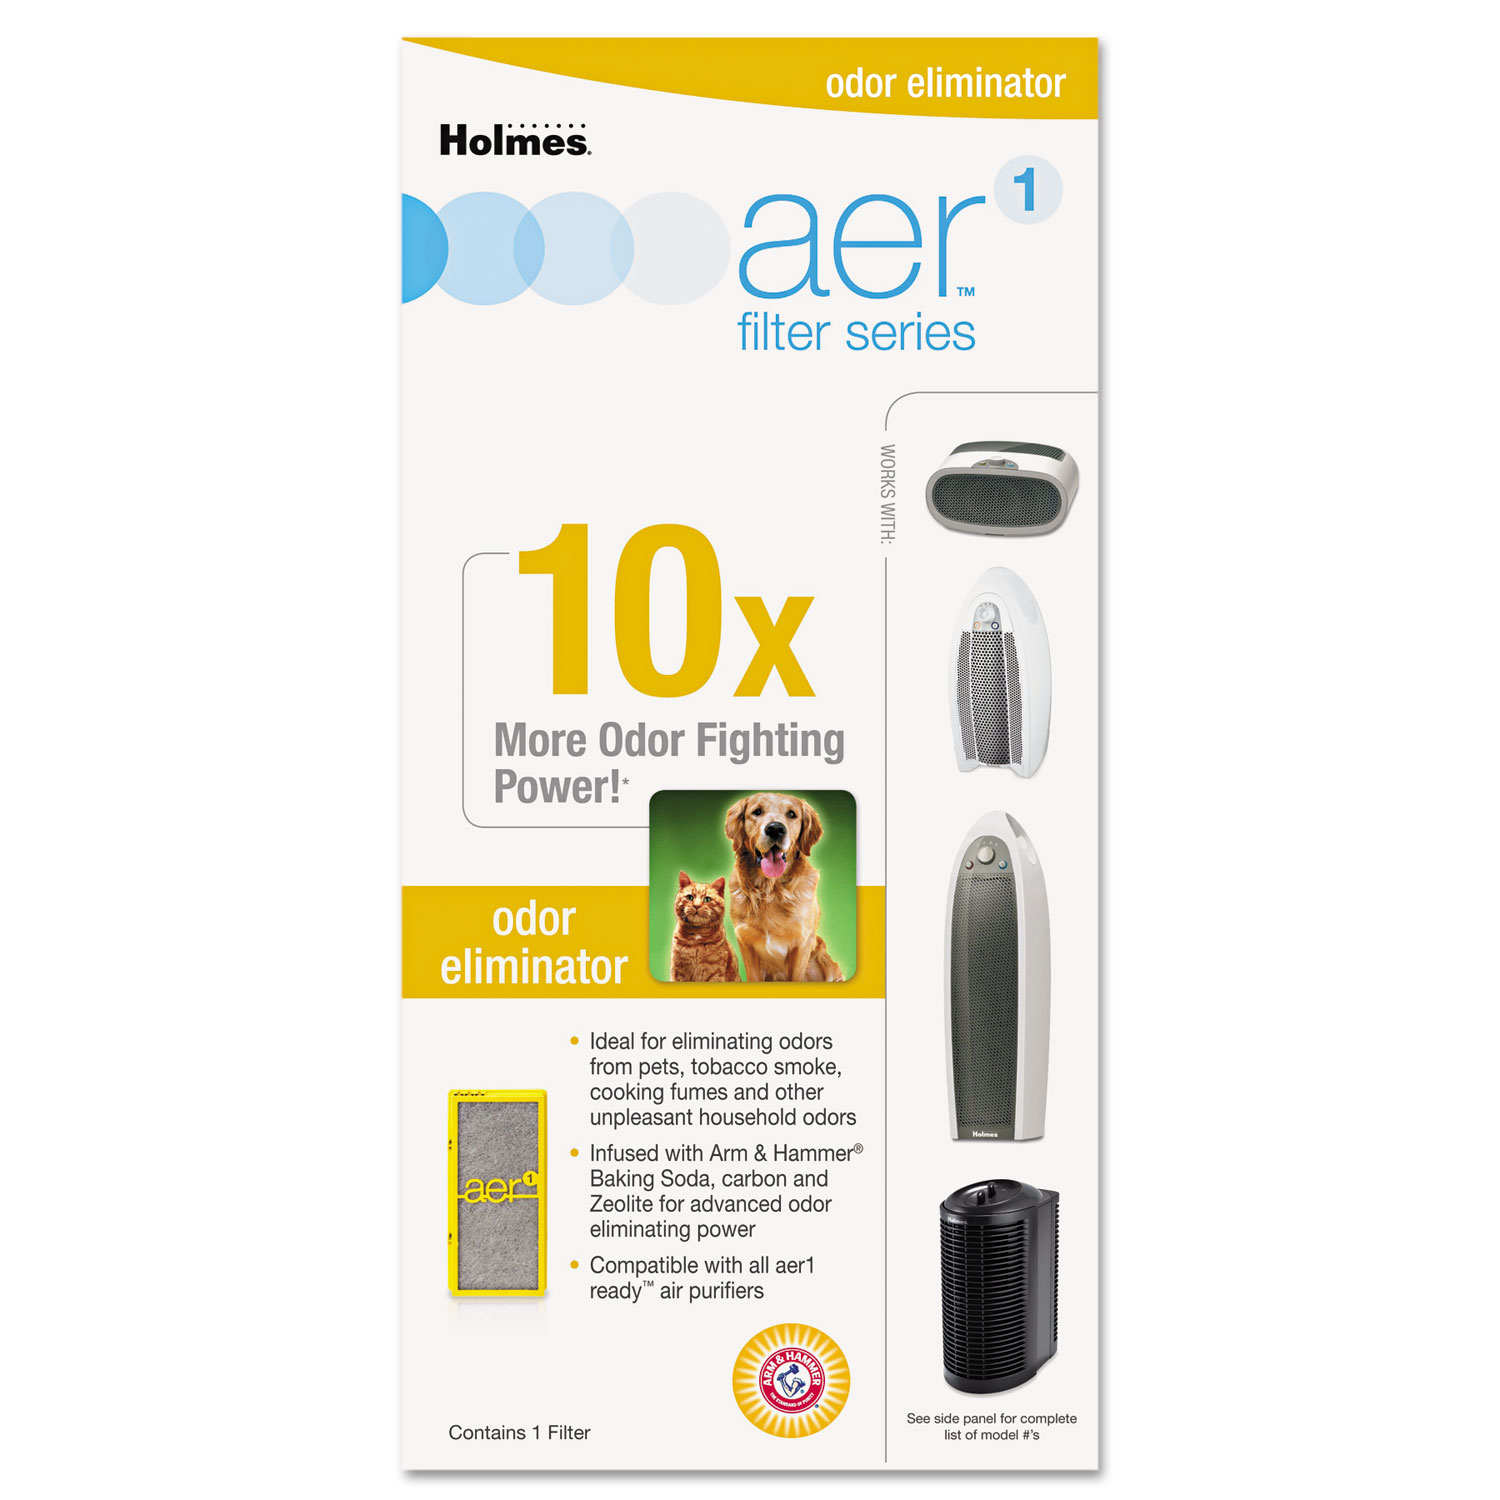 Solution Specific Filters, Odors